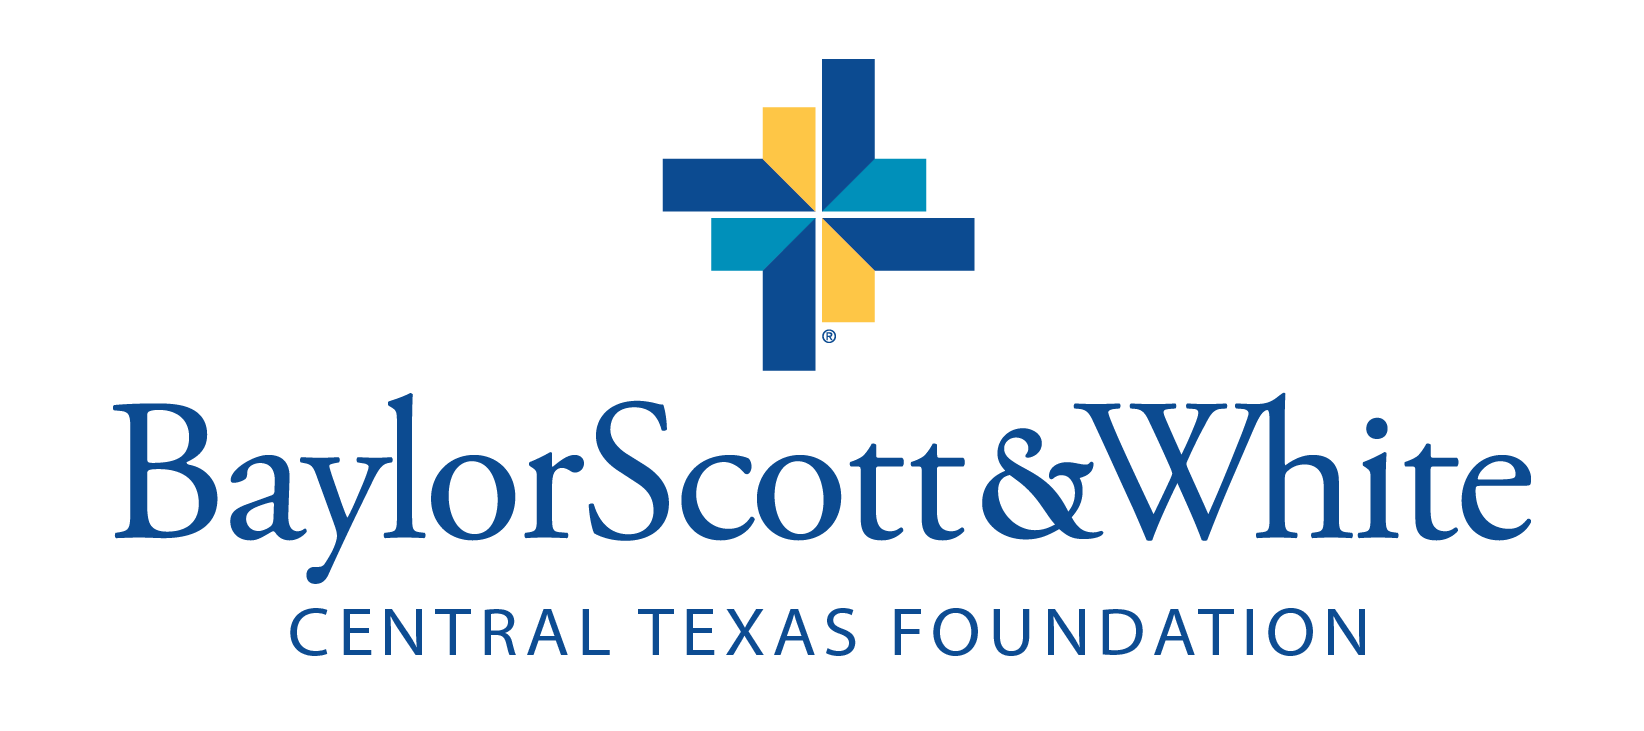 Baylor Scott & White - Central Texas Foundation logo